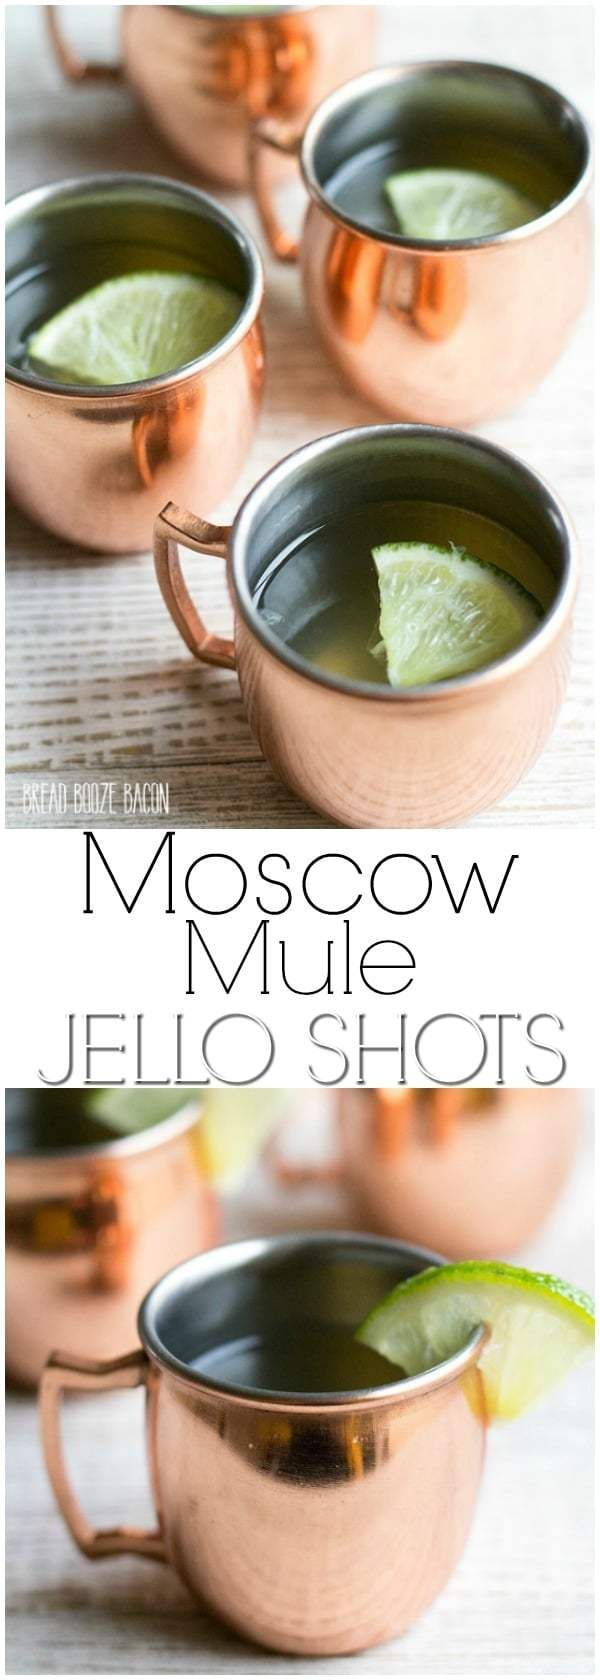 Moscow Mule Jello Shots